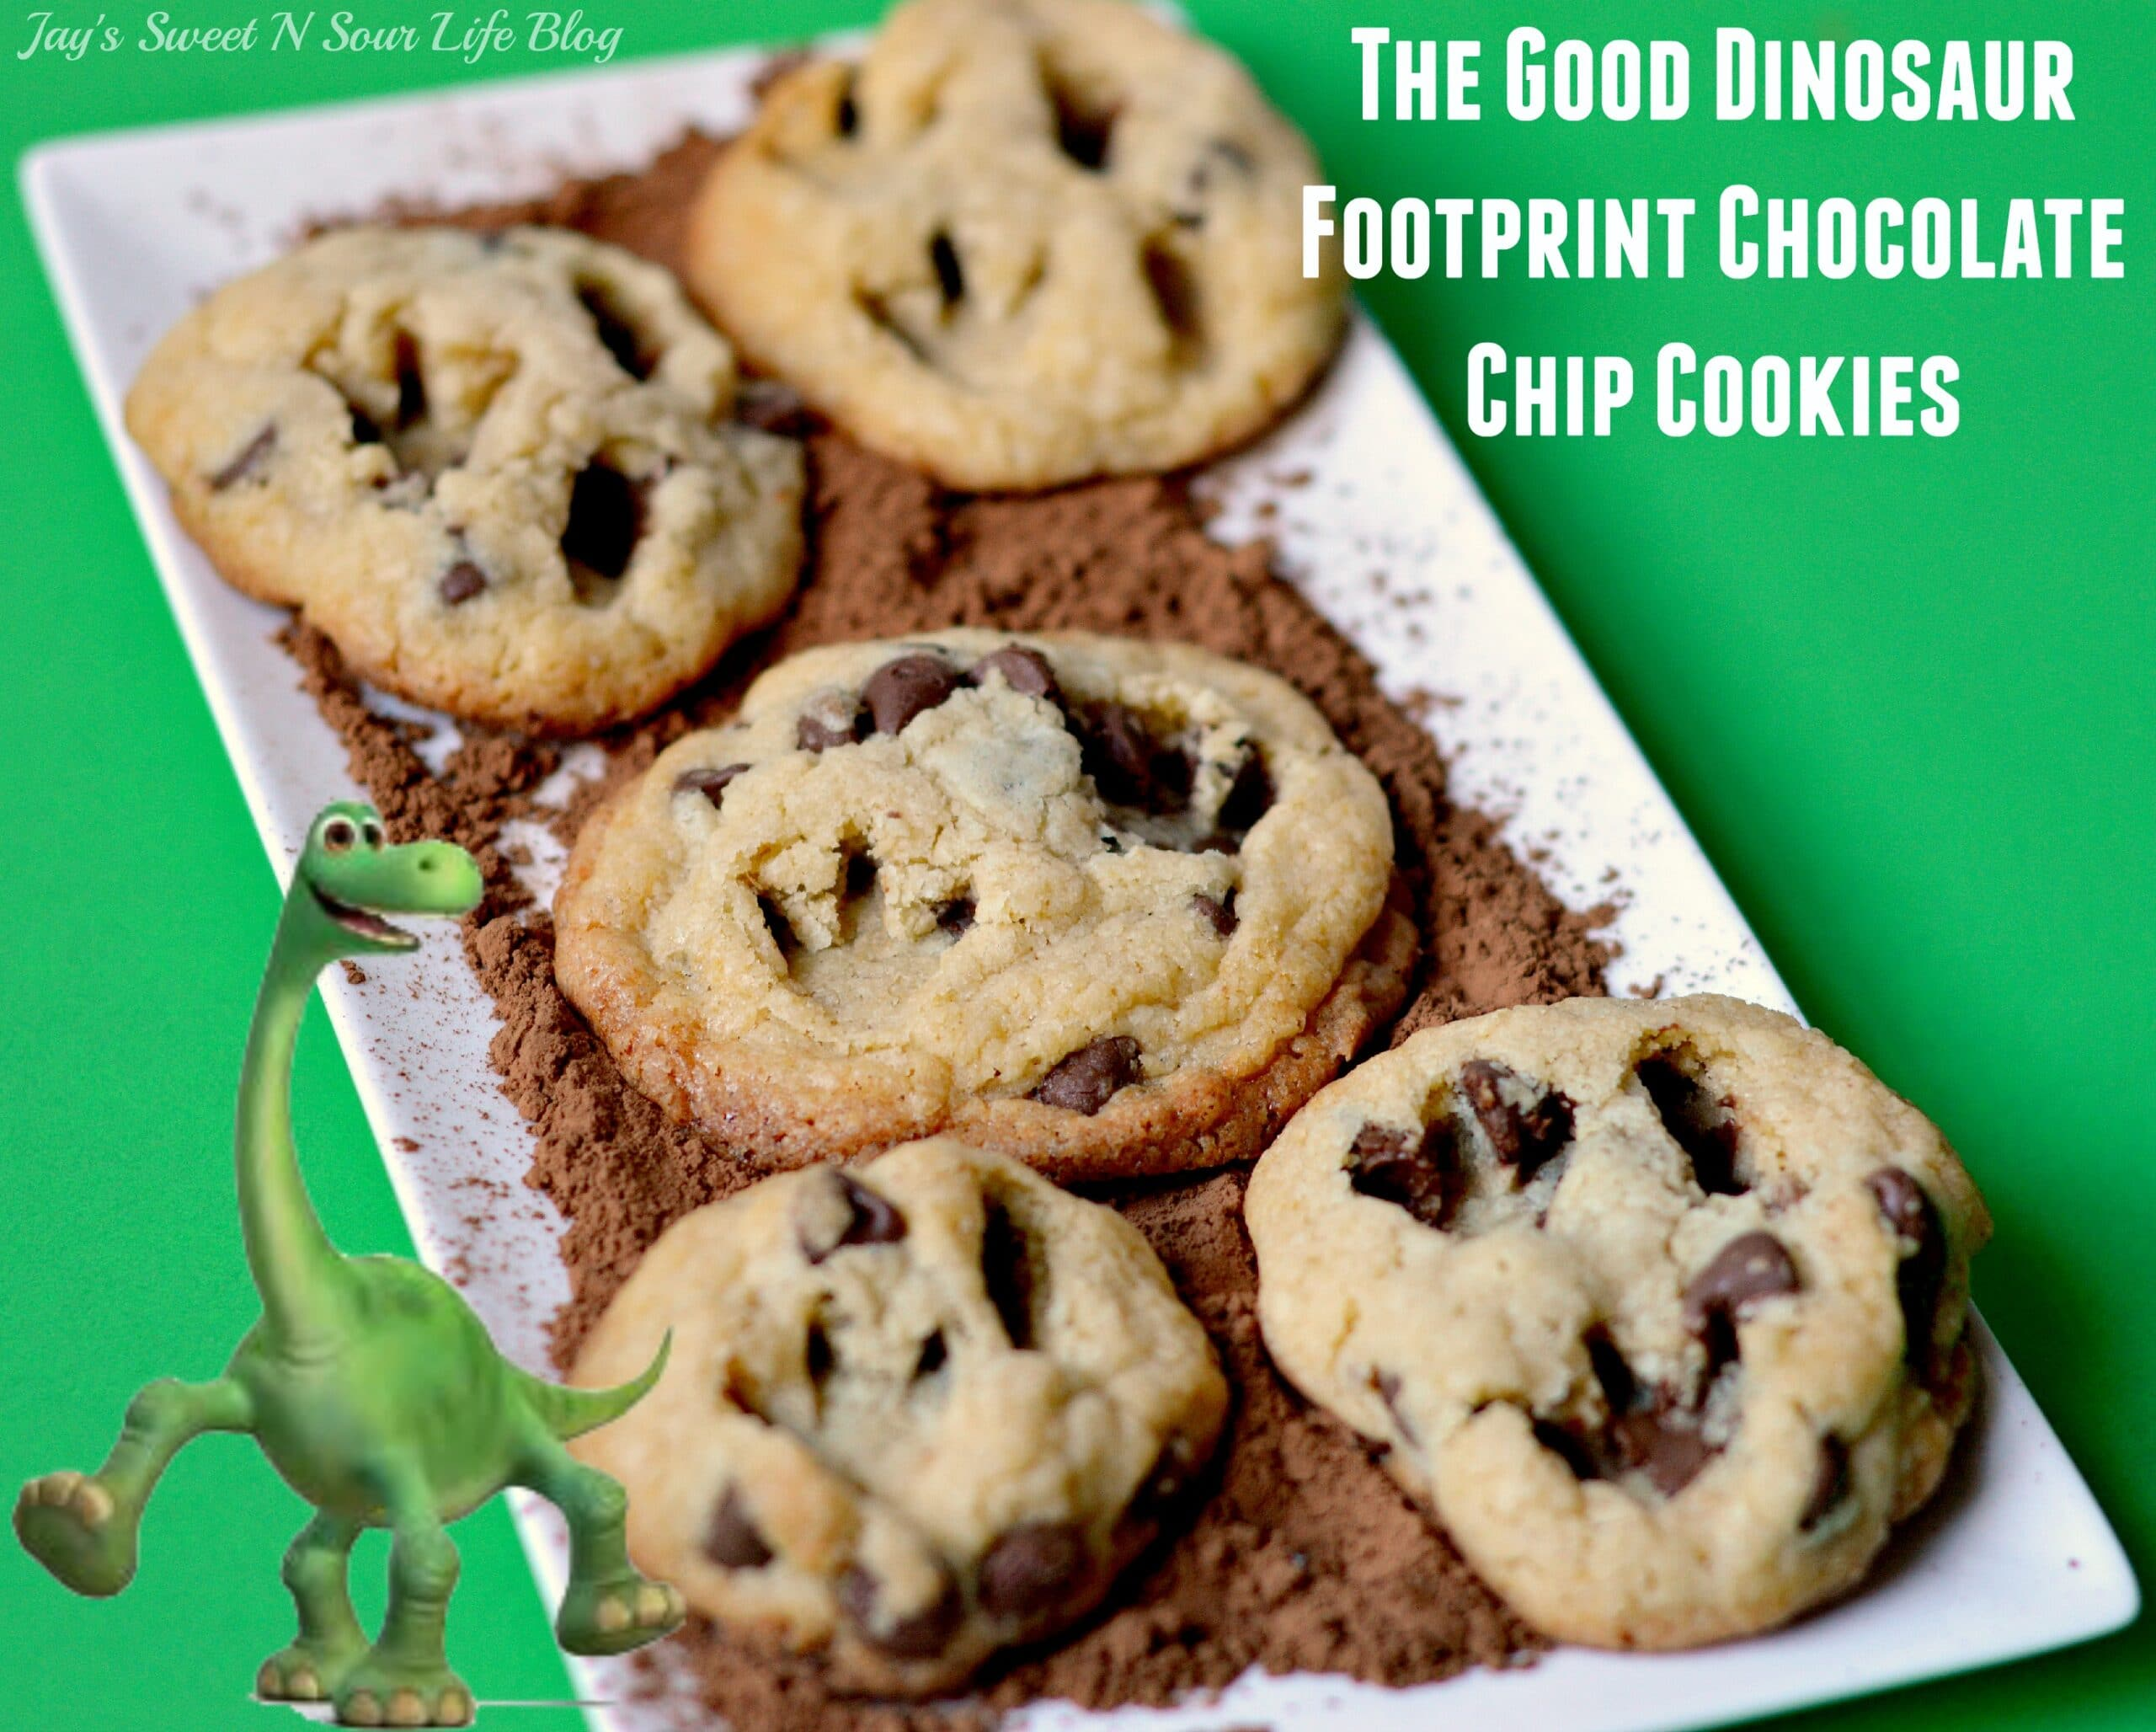 The Good Dinosaur Footprint Chocolate Chip Cookies